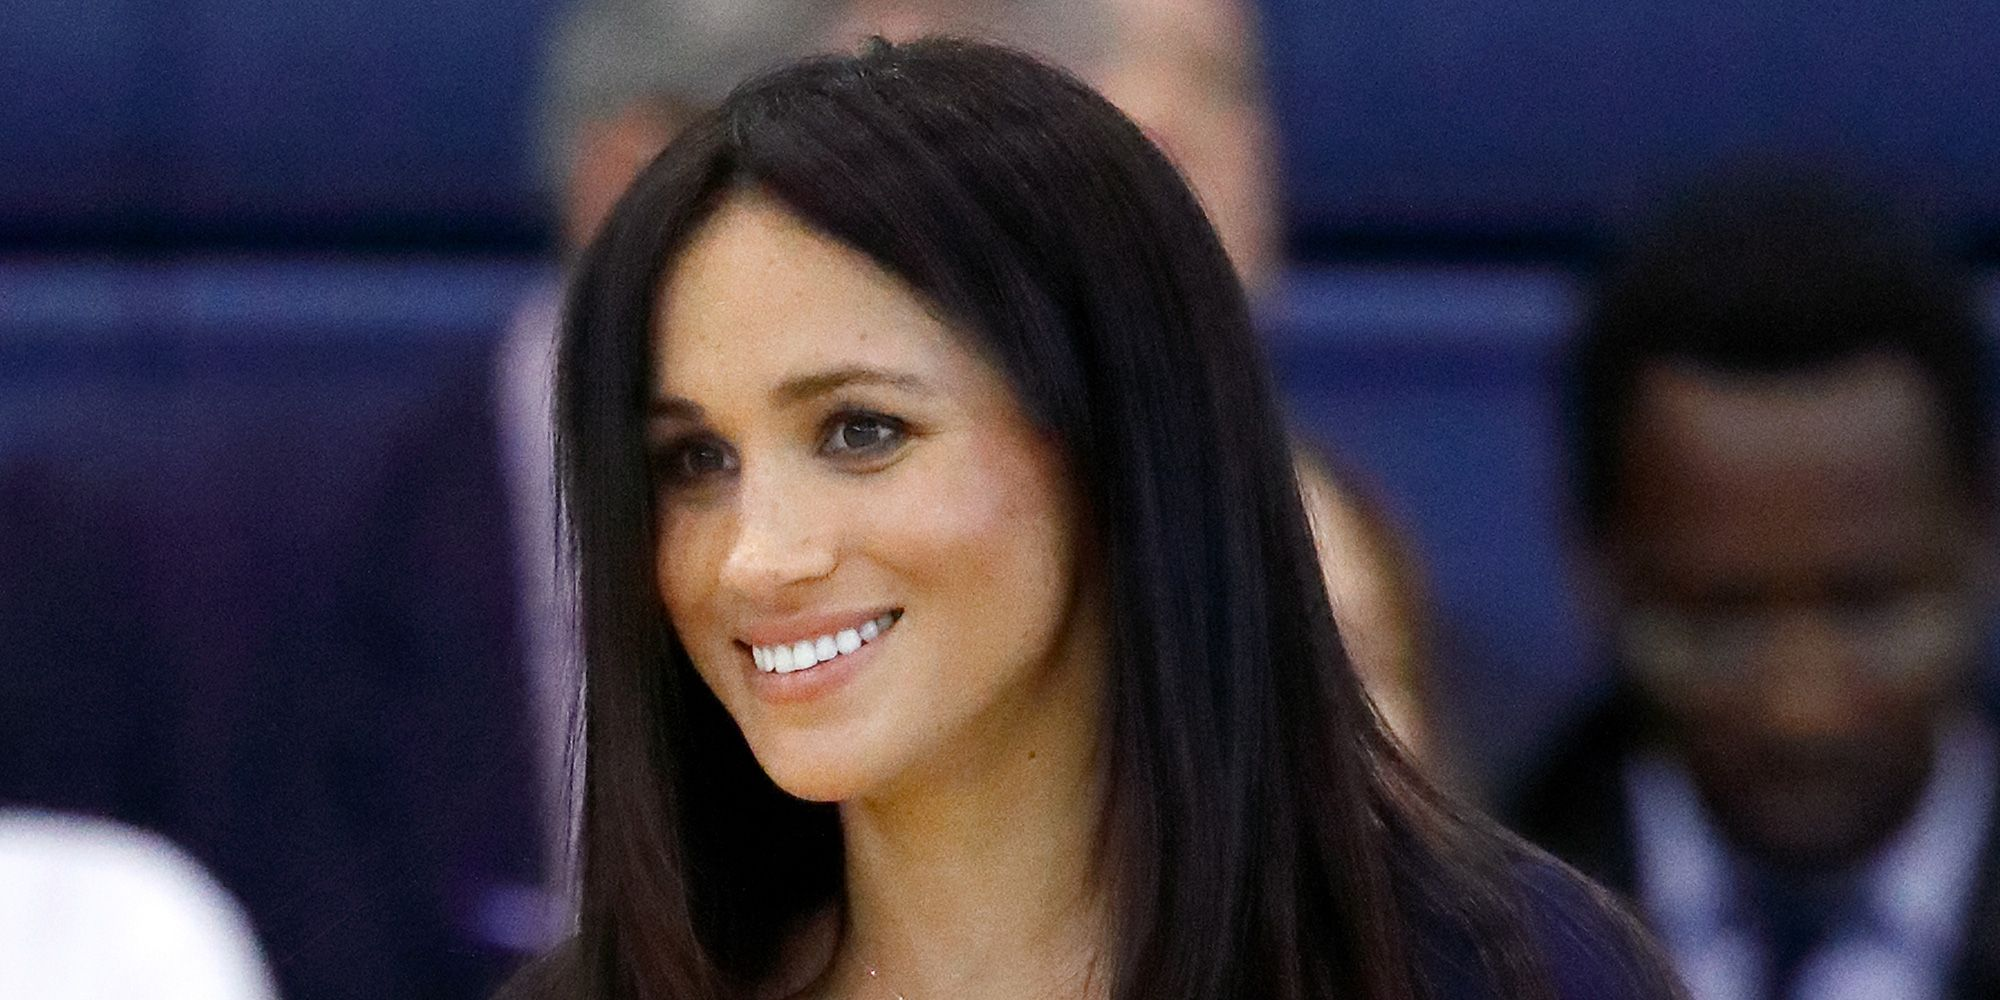 Why people think Meghan Markle's new hair is a hint she's pregnant